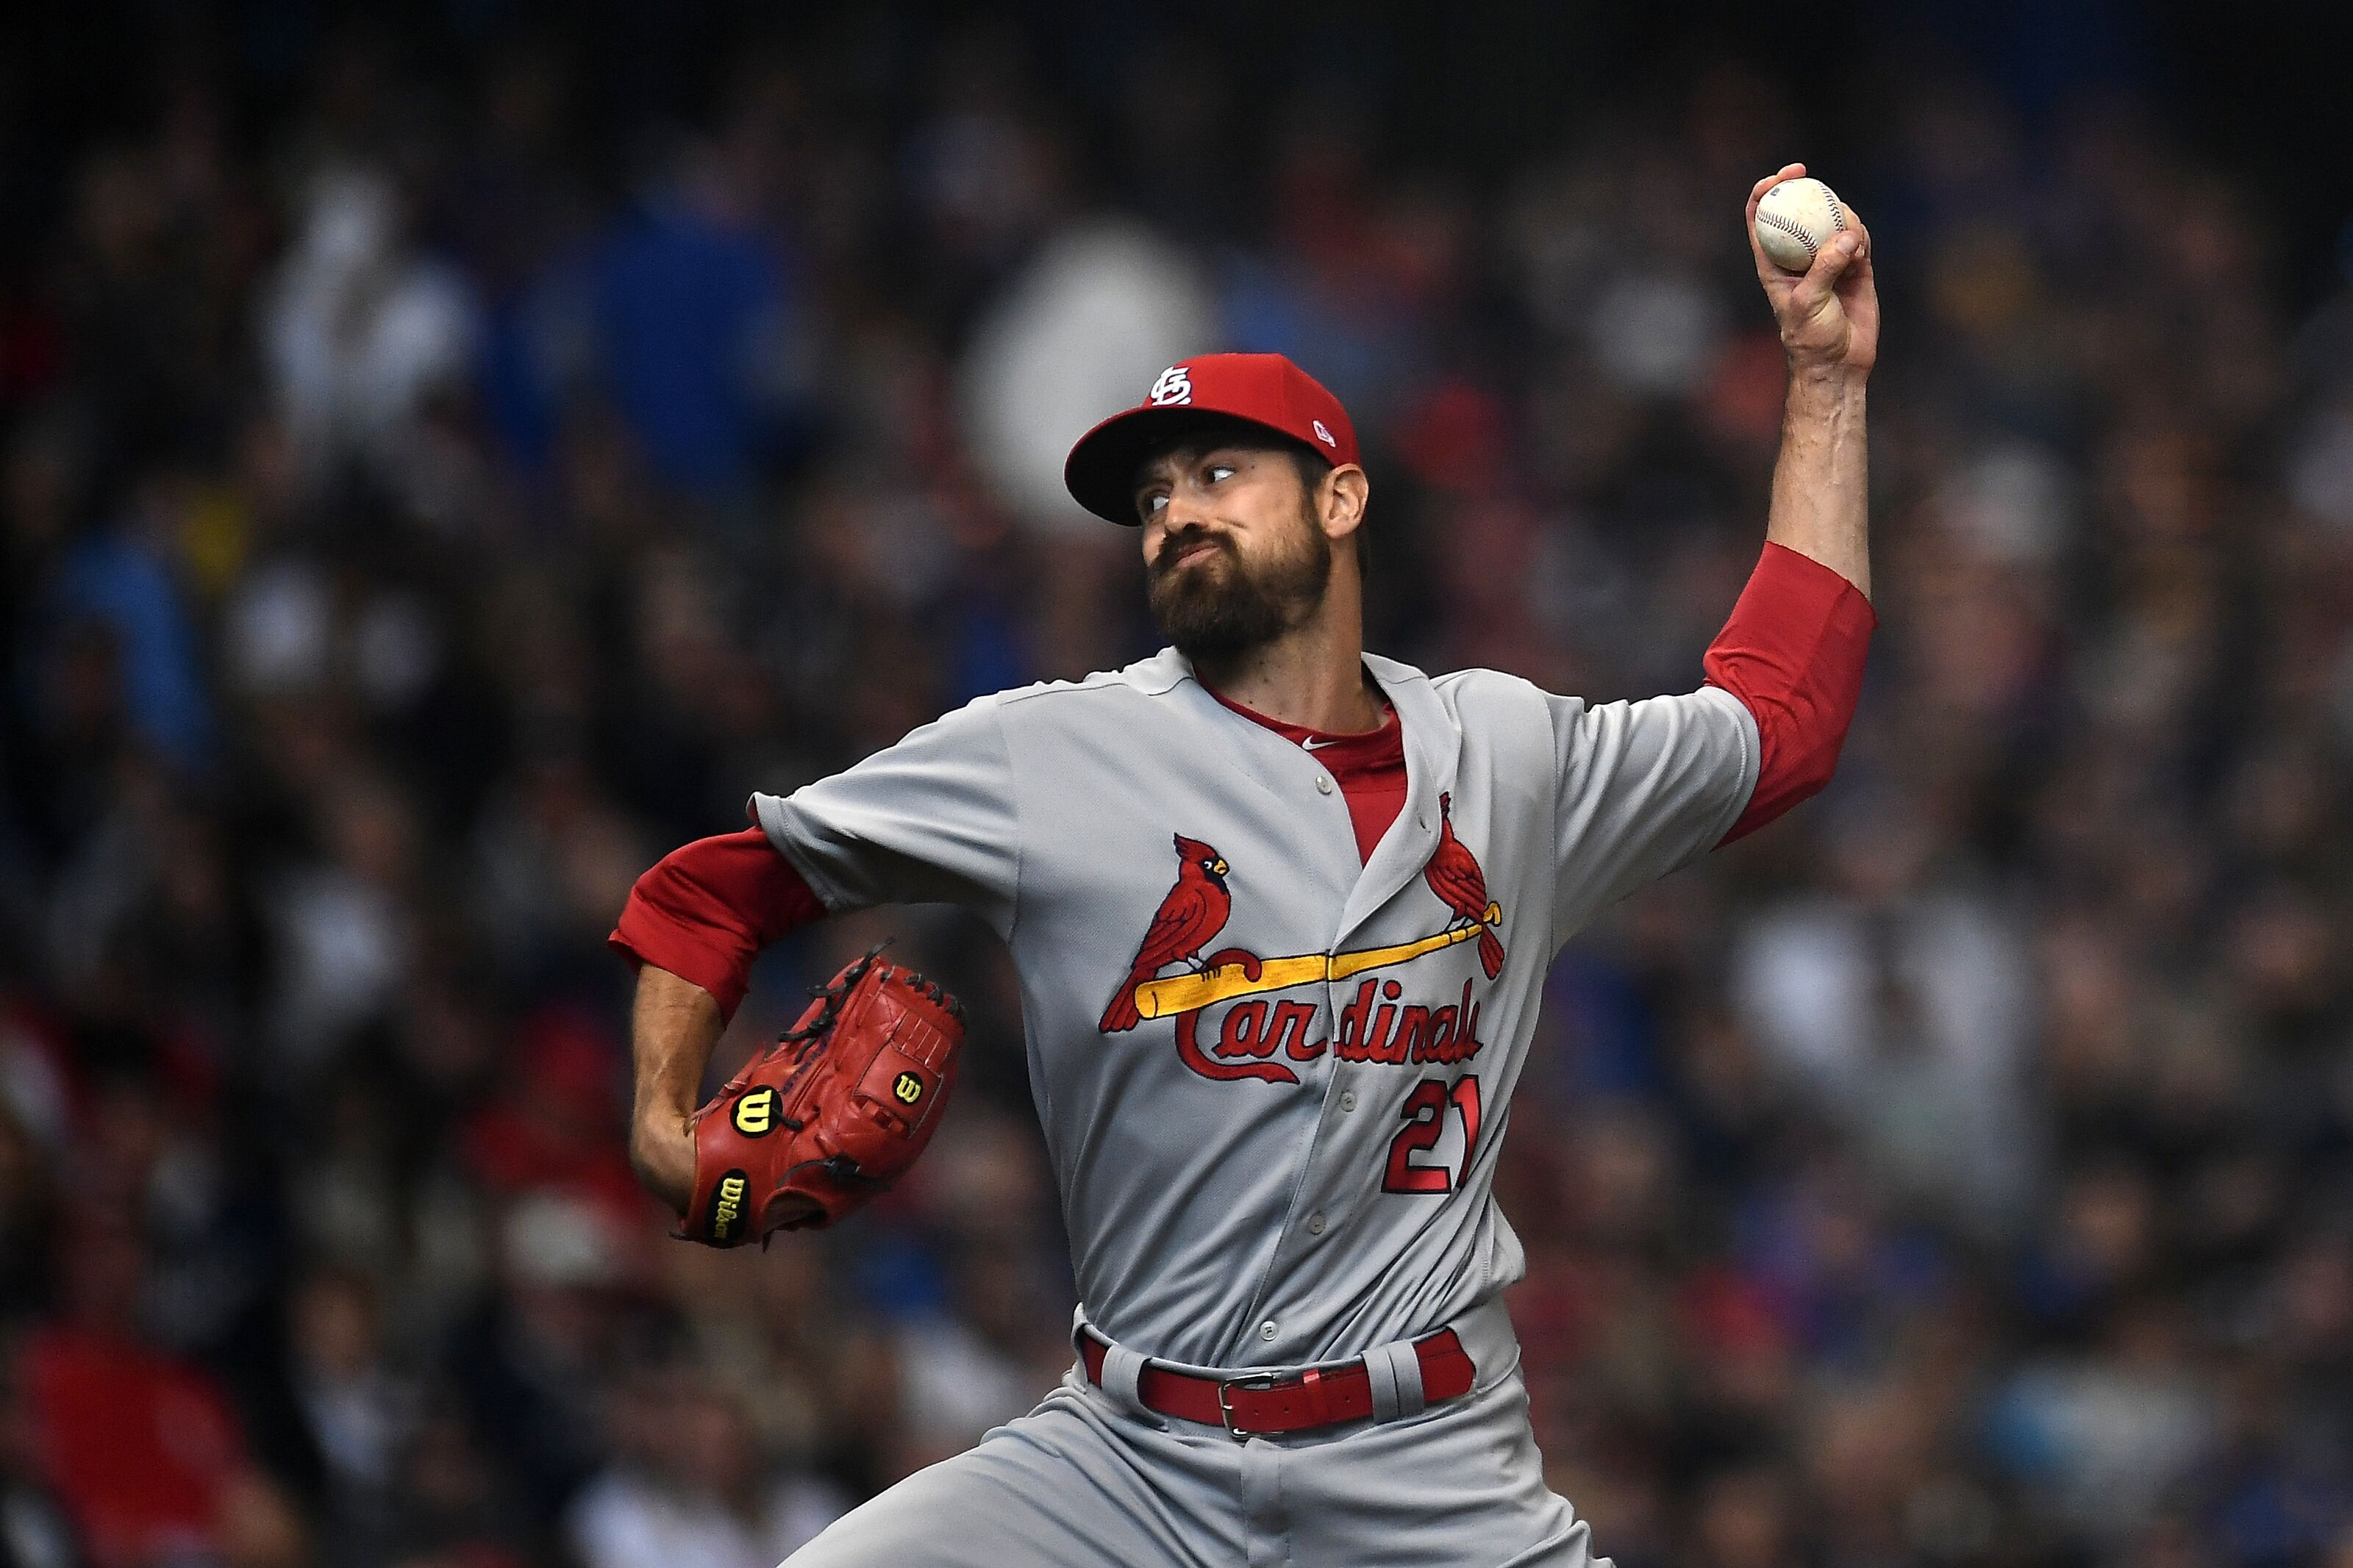 St. Louis Cardinals: What's so special about Miller's slider anyways?